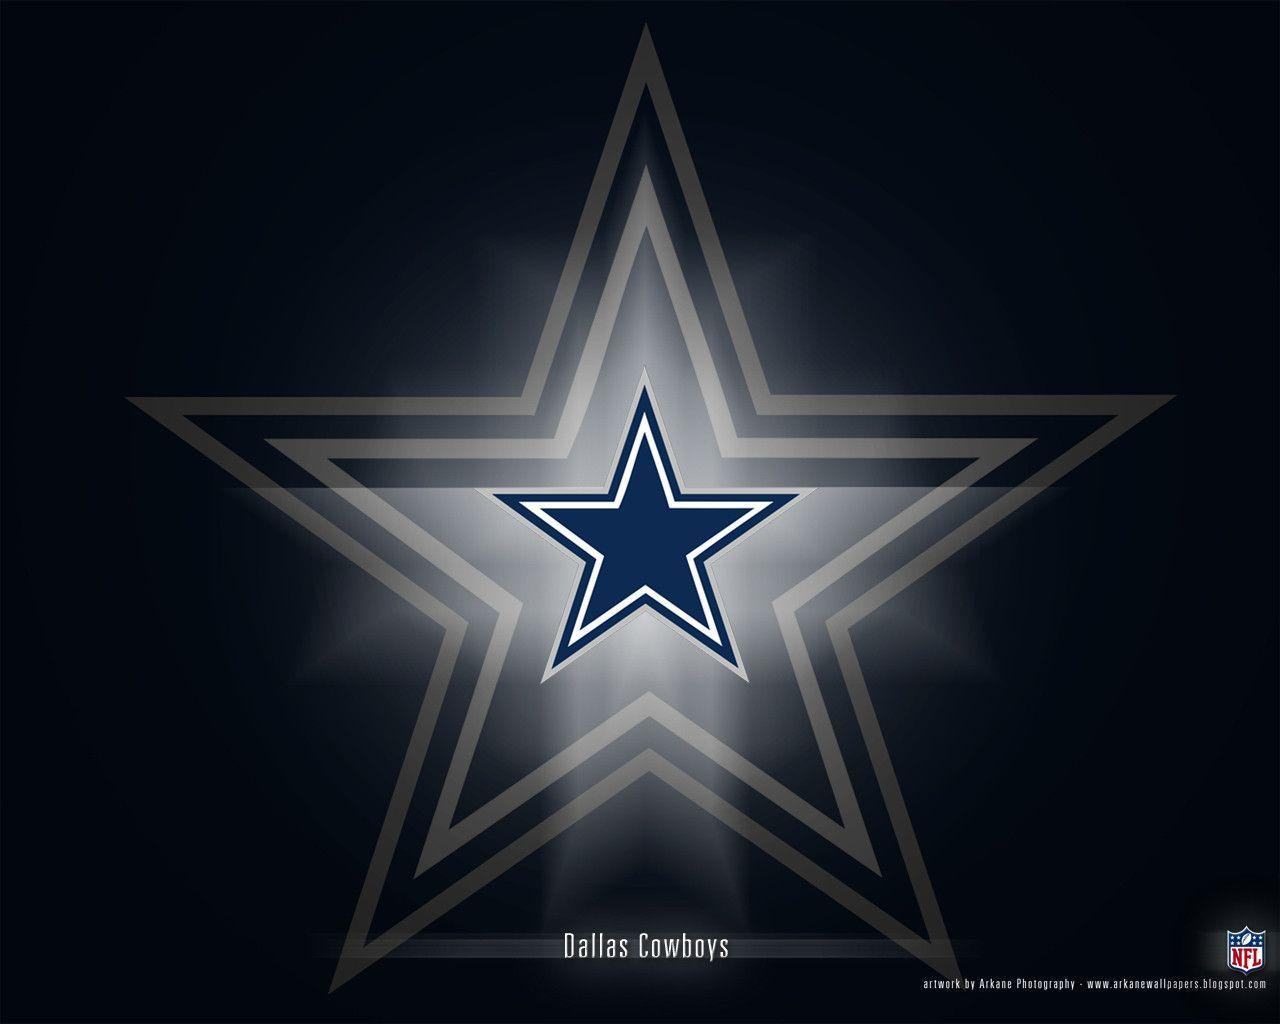 dallas cowboys image wallpapers wallpaper cave show pictures of dallas cowboys logo show me pictures of dallas cowboys logo